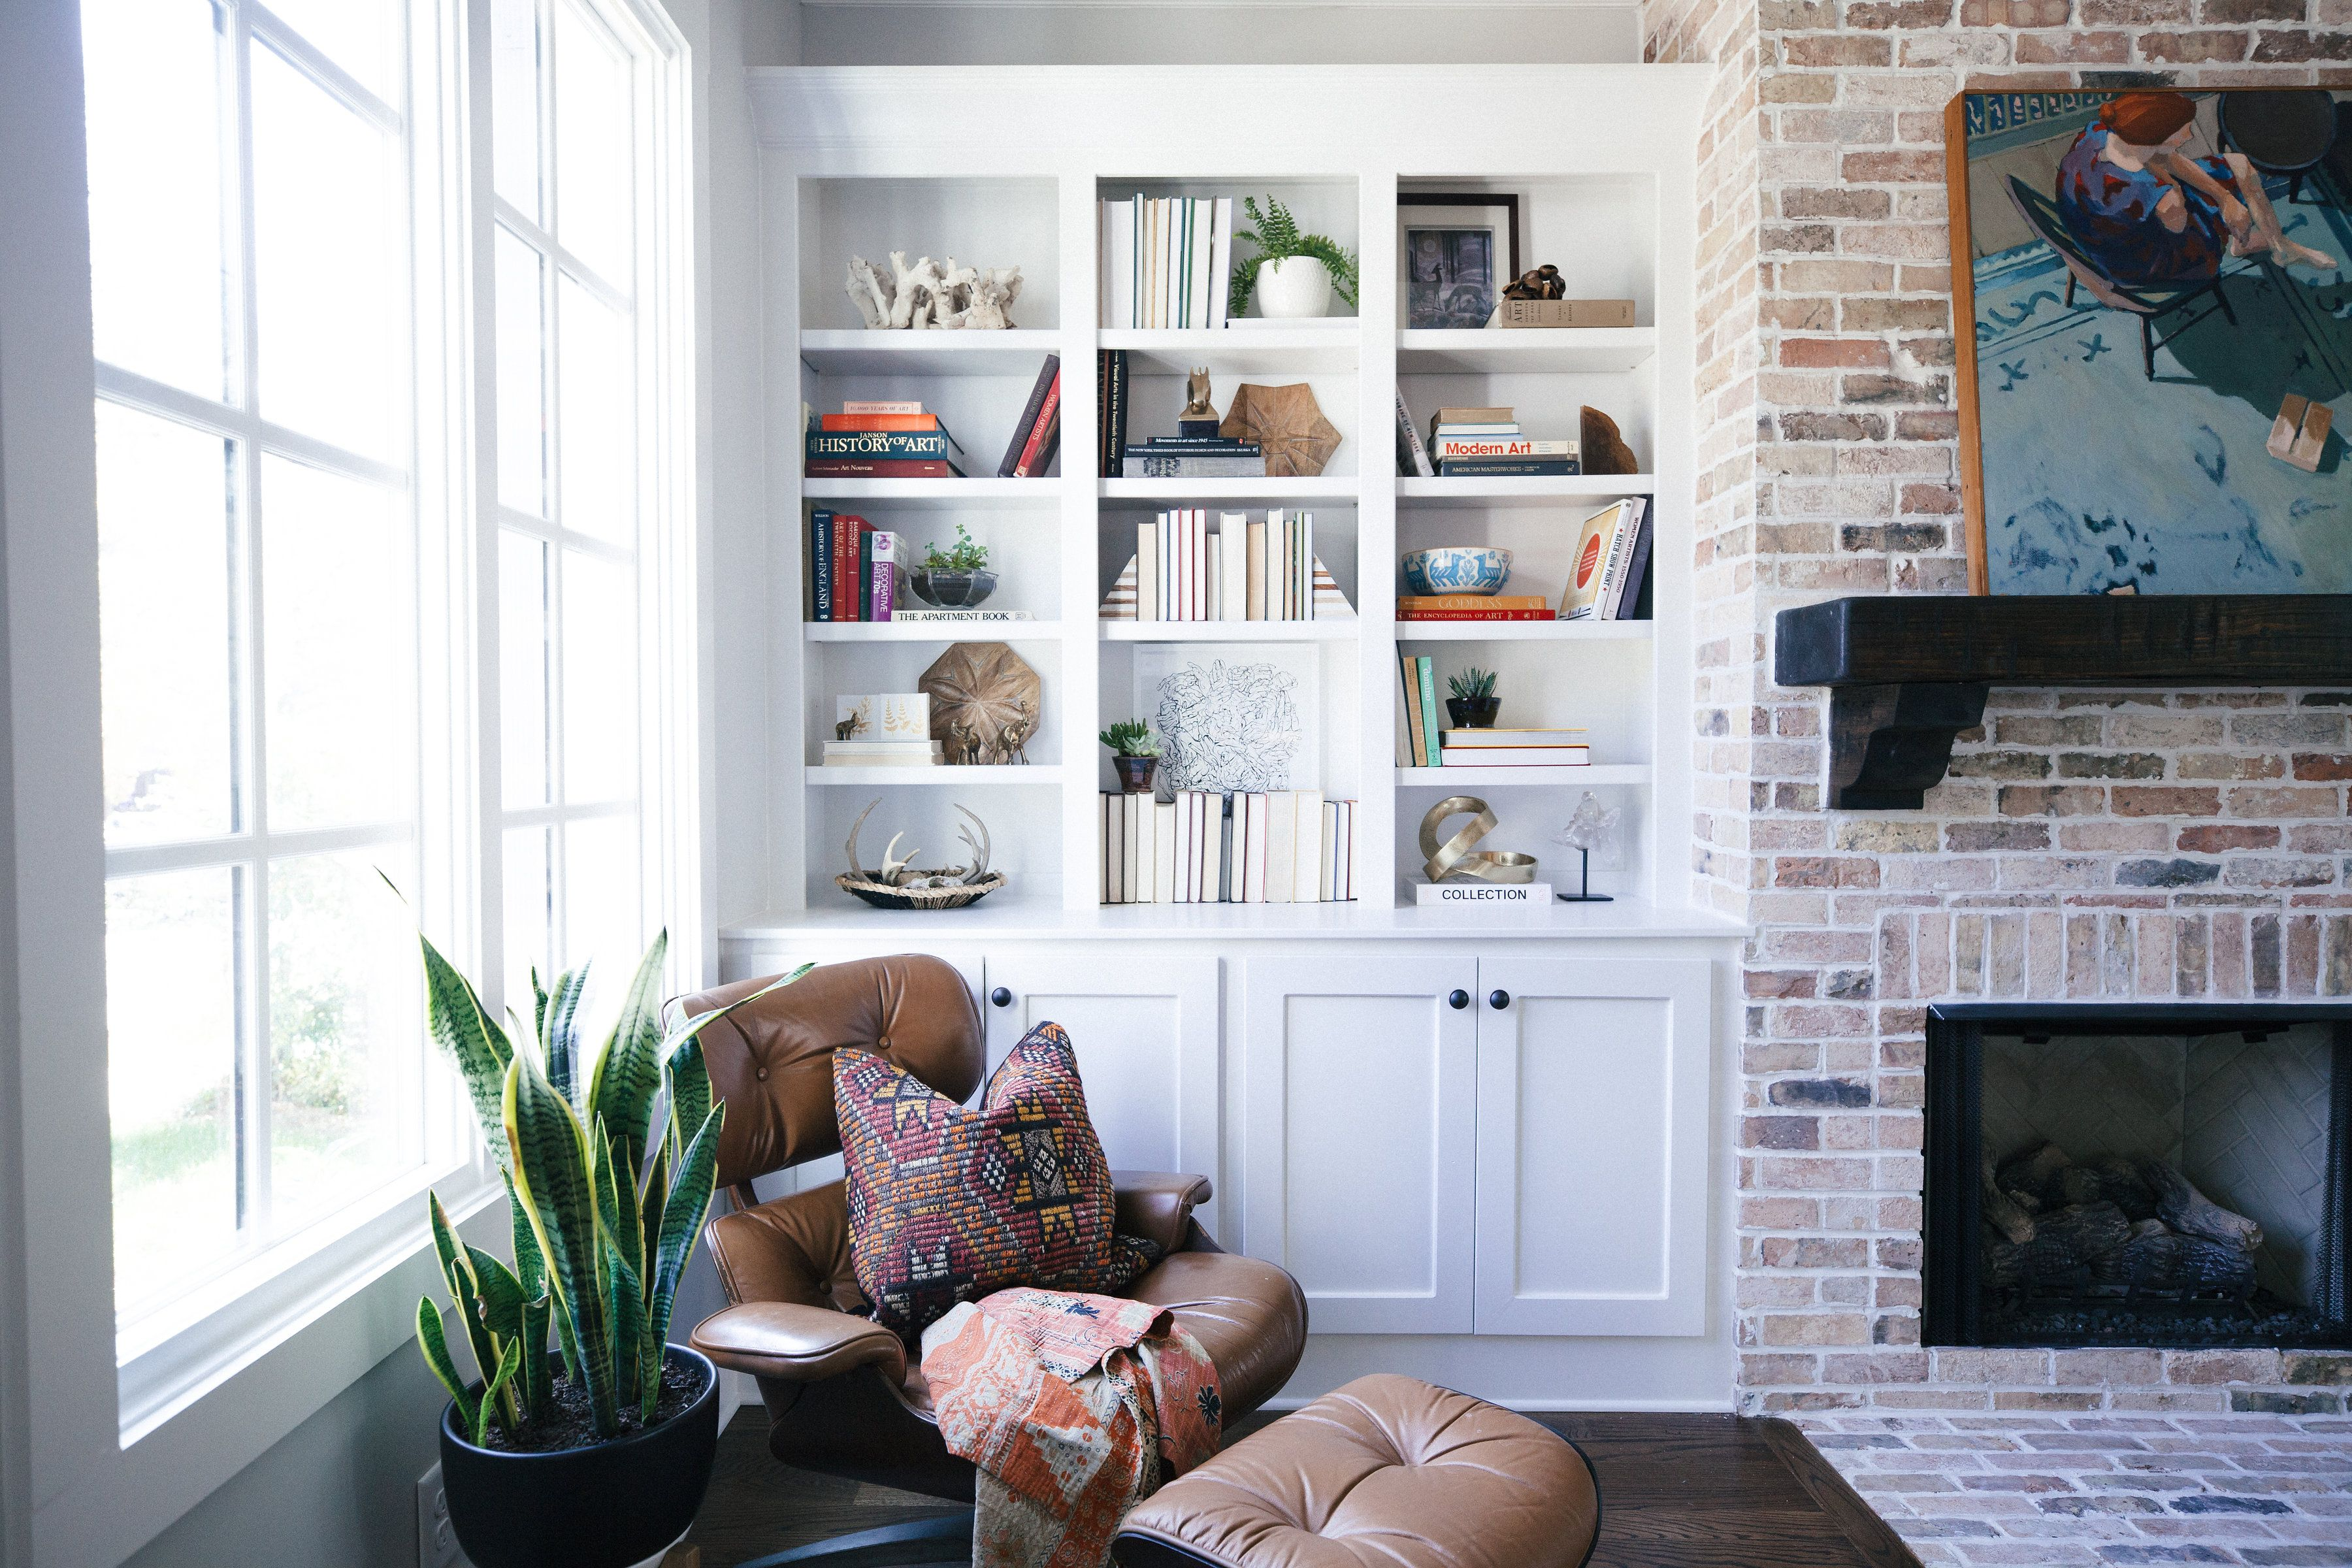 12 Things Every Living Room Needs to Be Complete | Living rooms ...